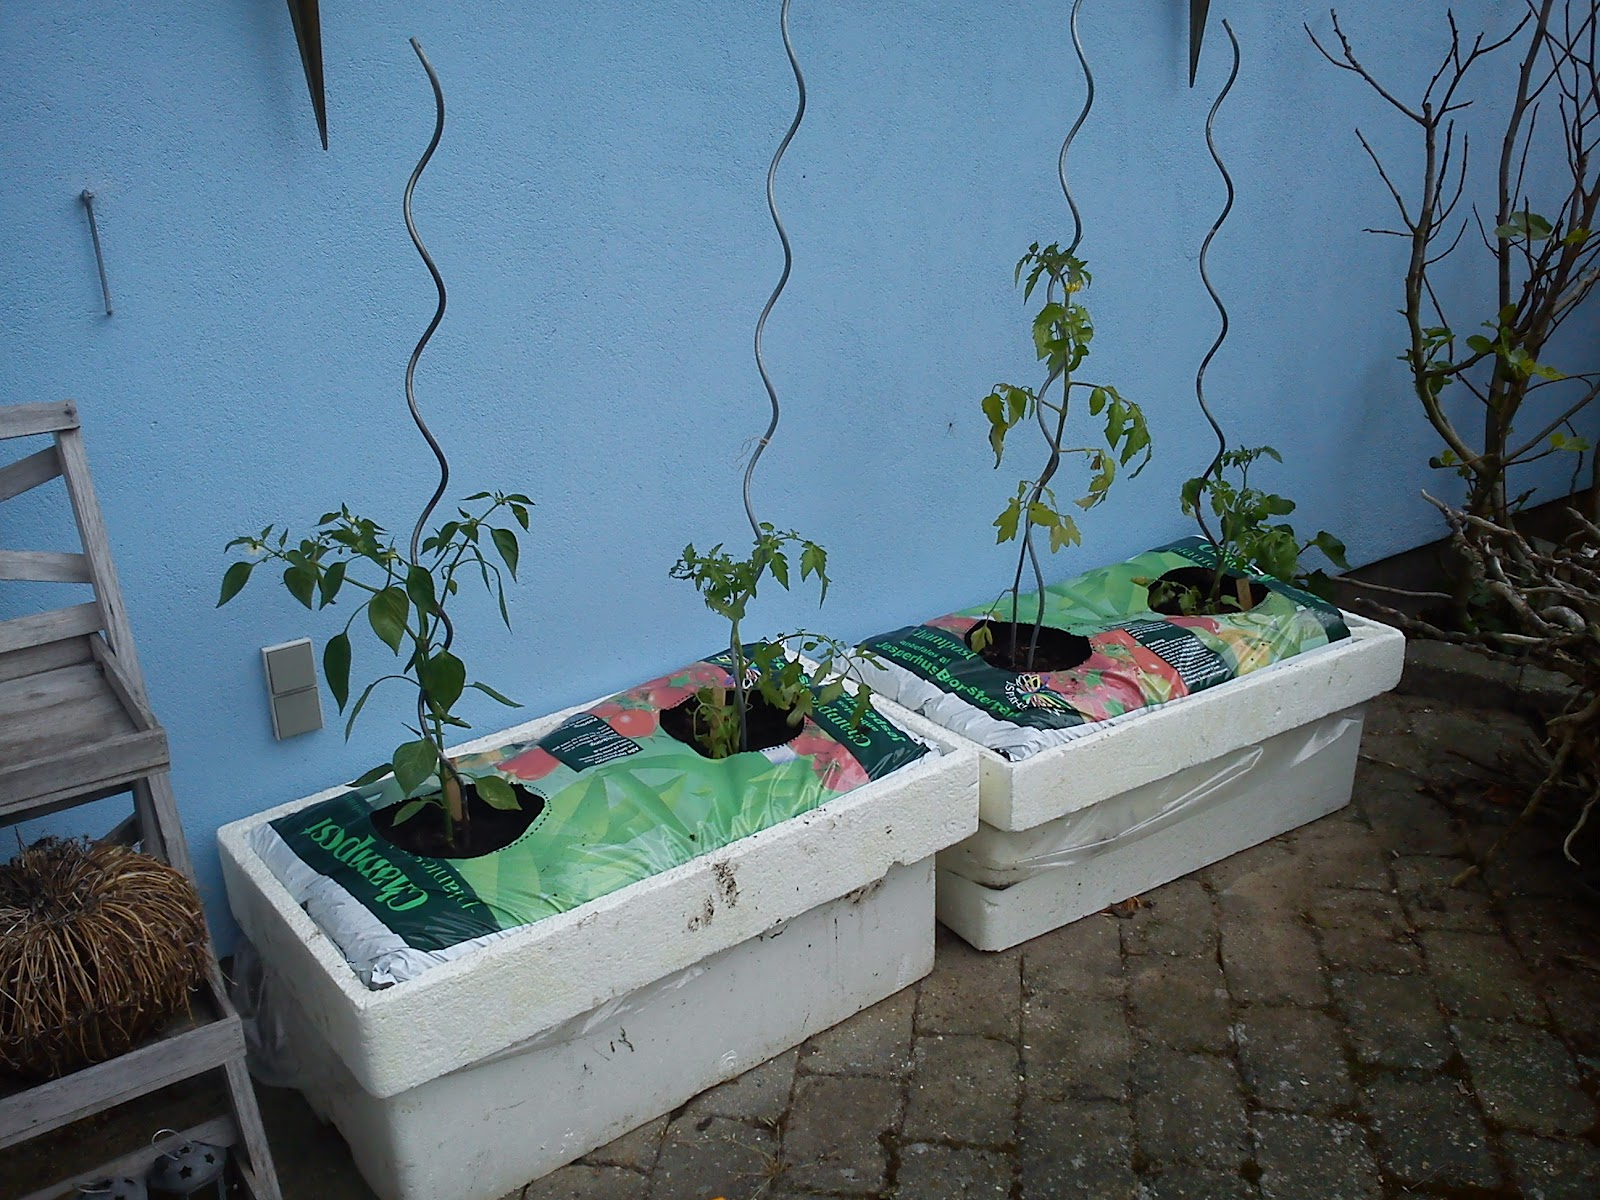 Kitchen of Kiki: Planting tomatoes and chili in the kitchen garden